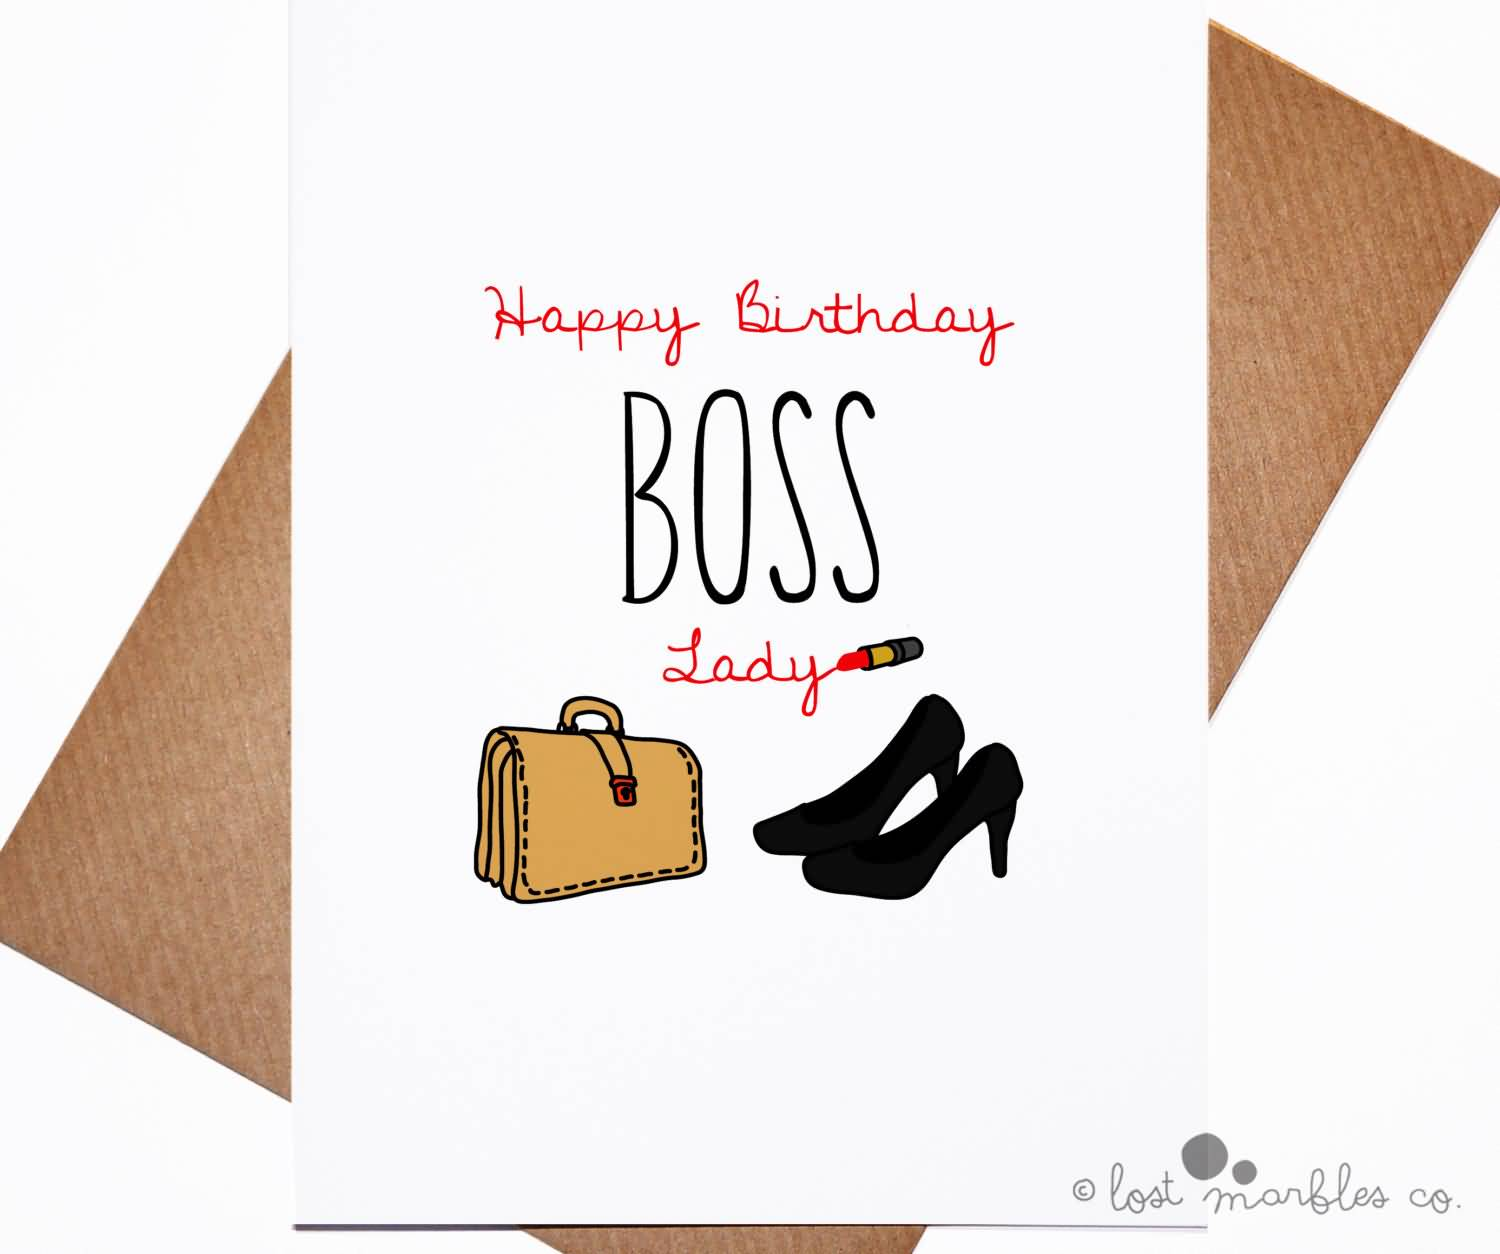 45 Fabulous Happy Birthday Wishes For Boss Image, Meme ...